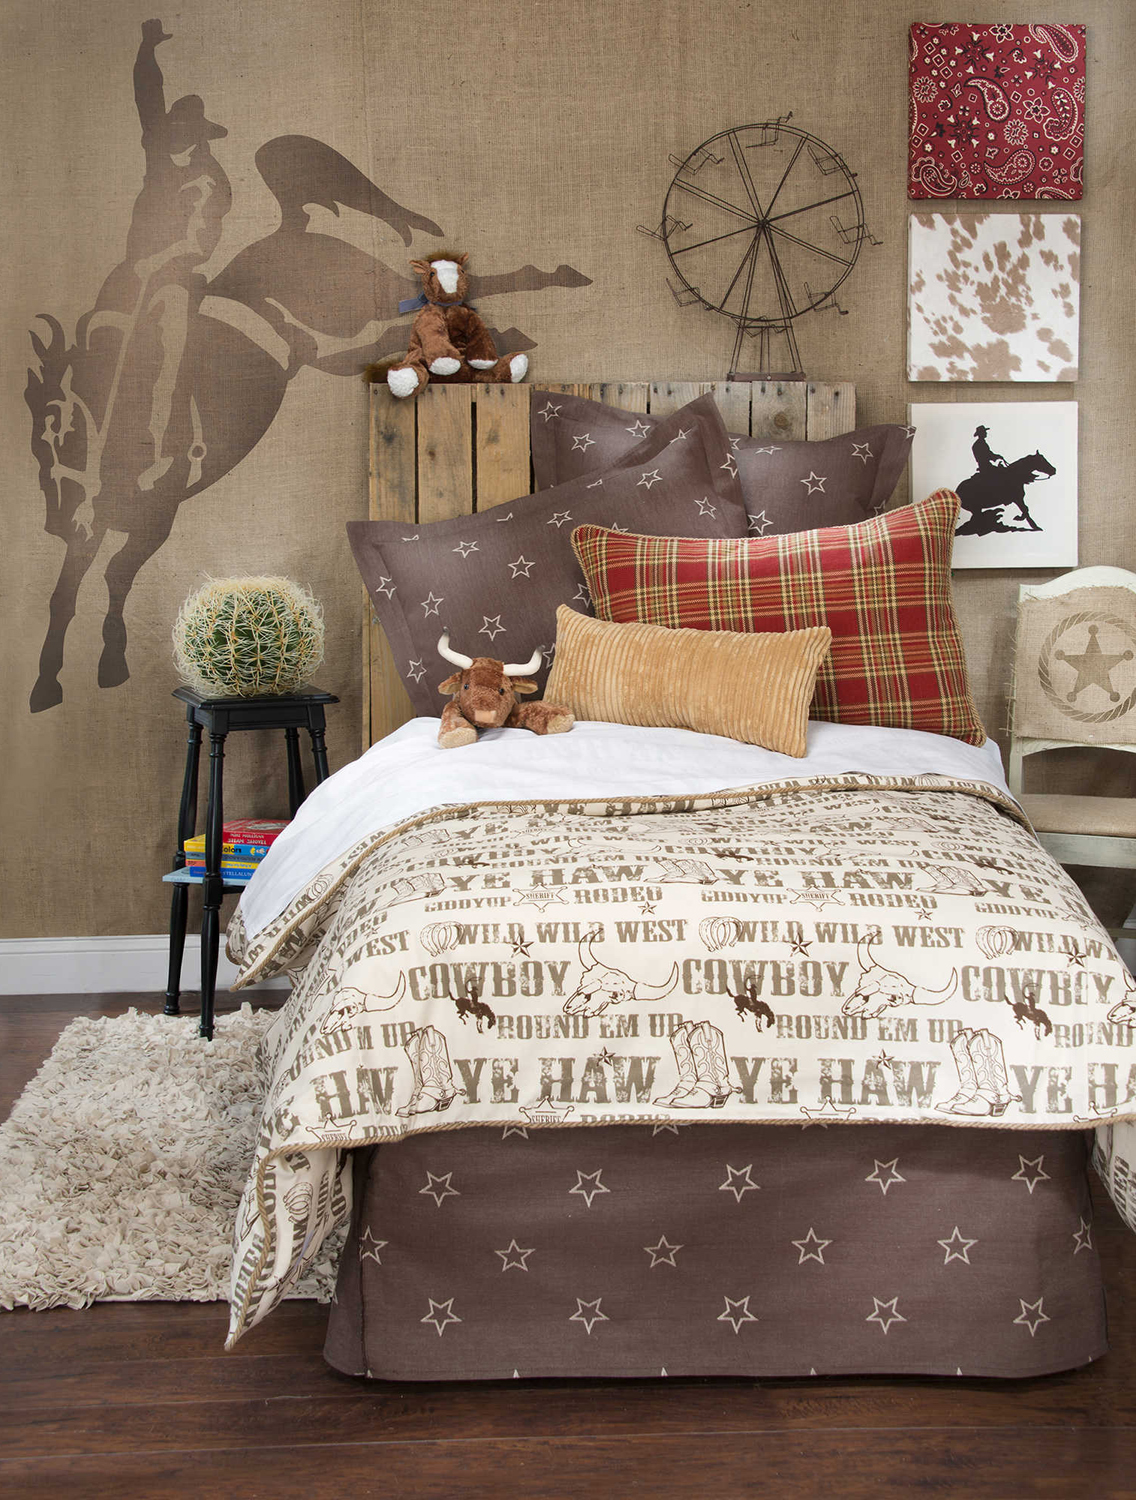 Cowboy theme bedrooms create a cowboy bedroom for Cowgirl bedroom ideas